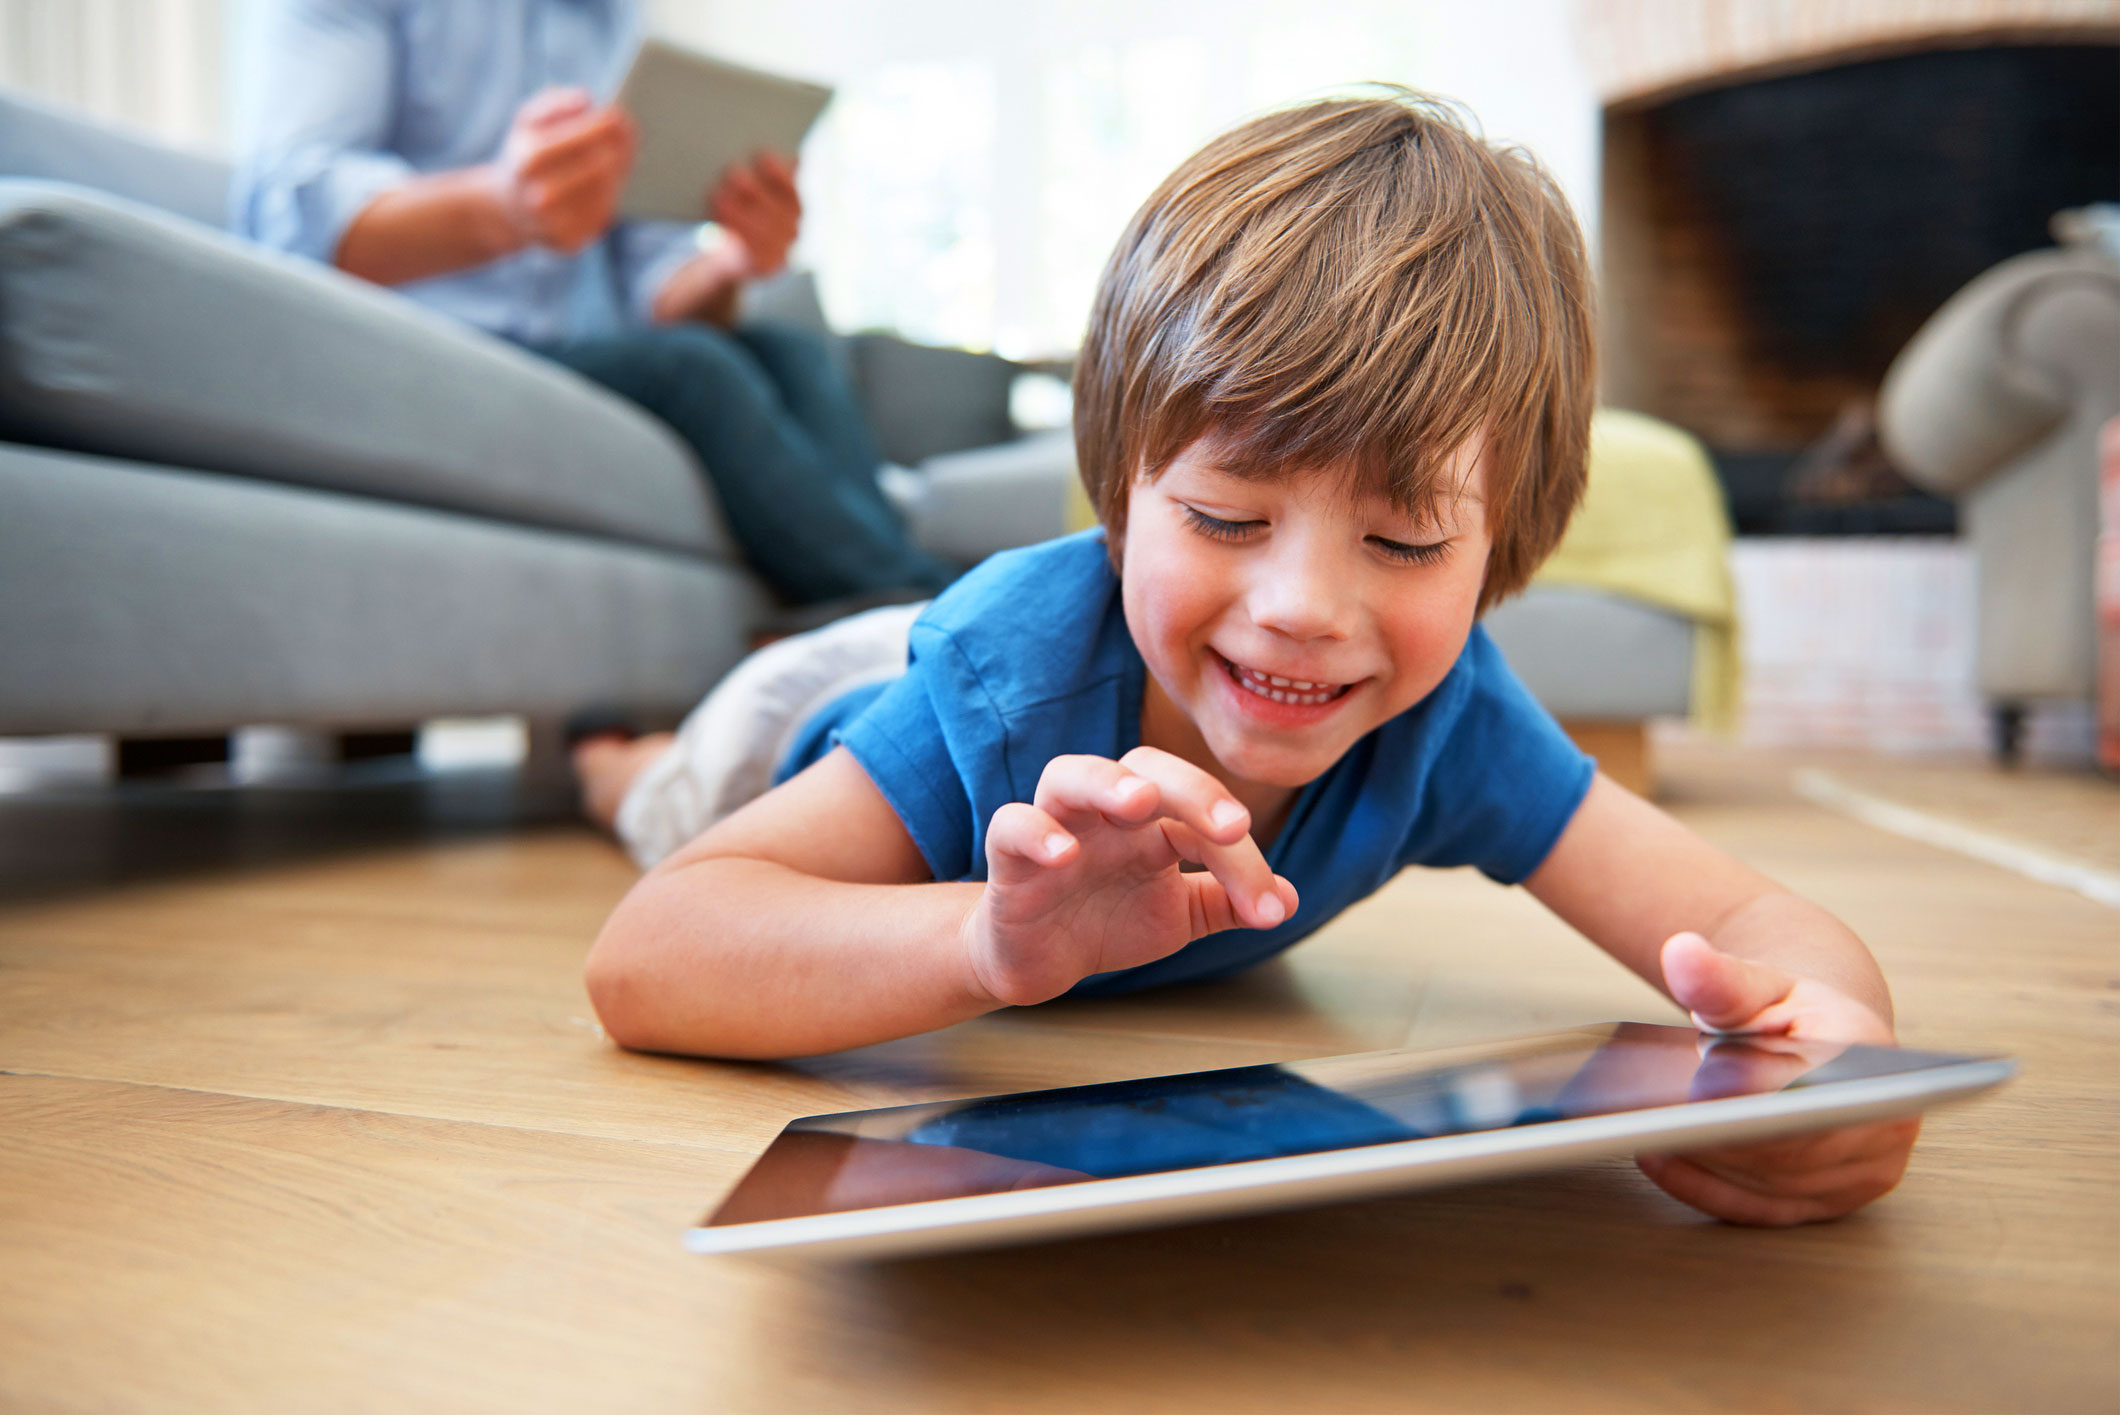 Child-Playing-games-on-Dad-s-tablet